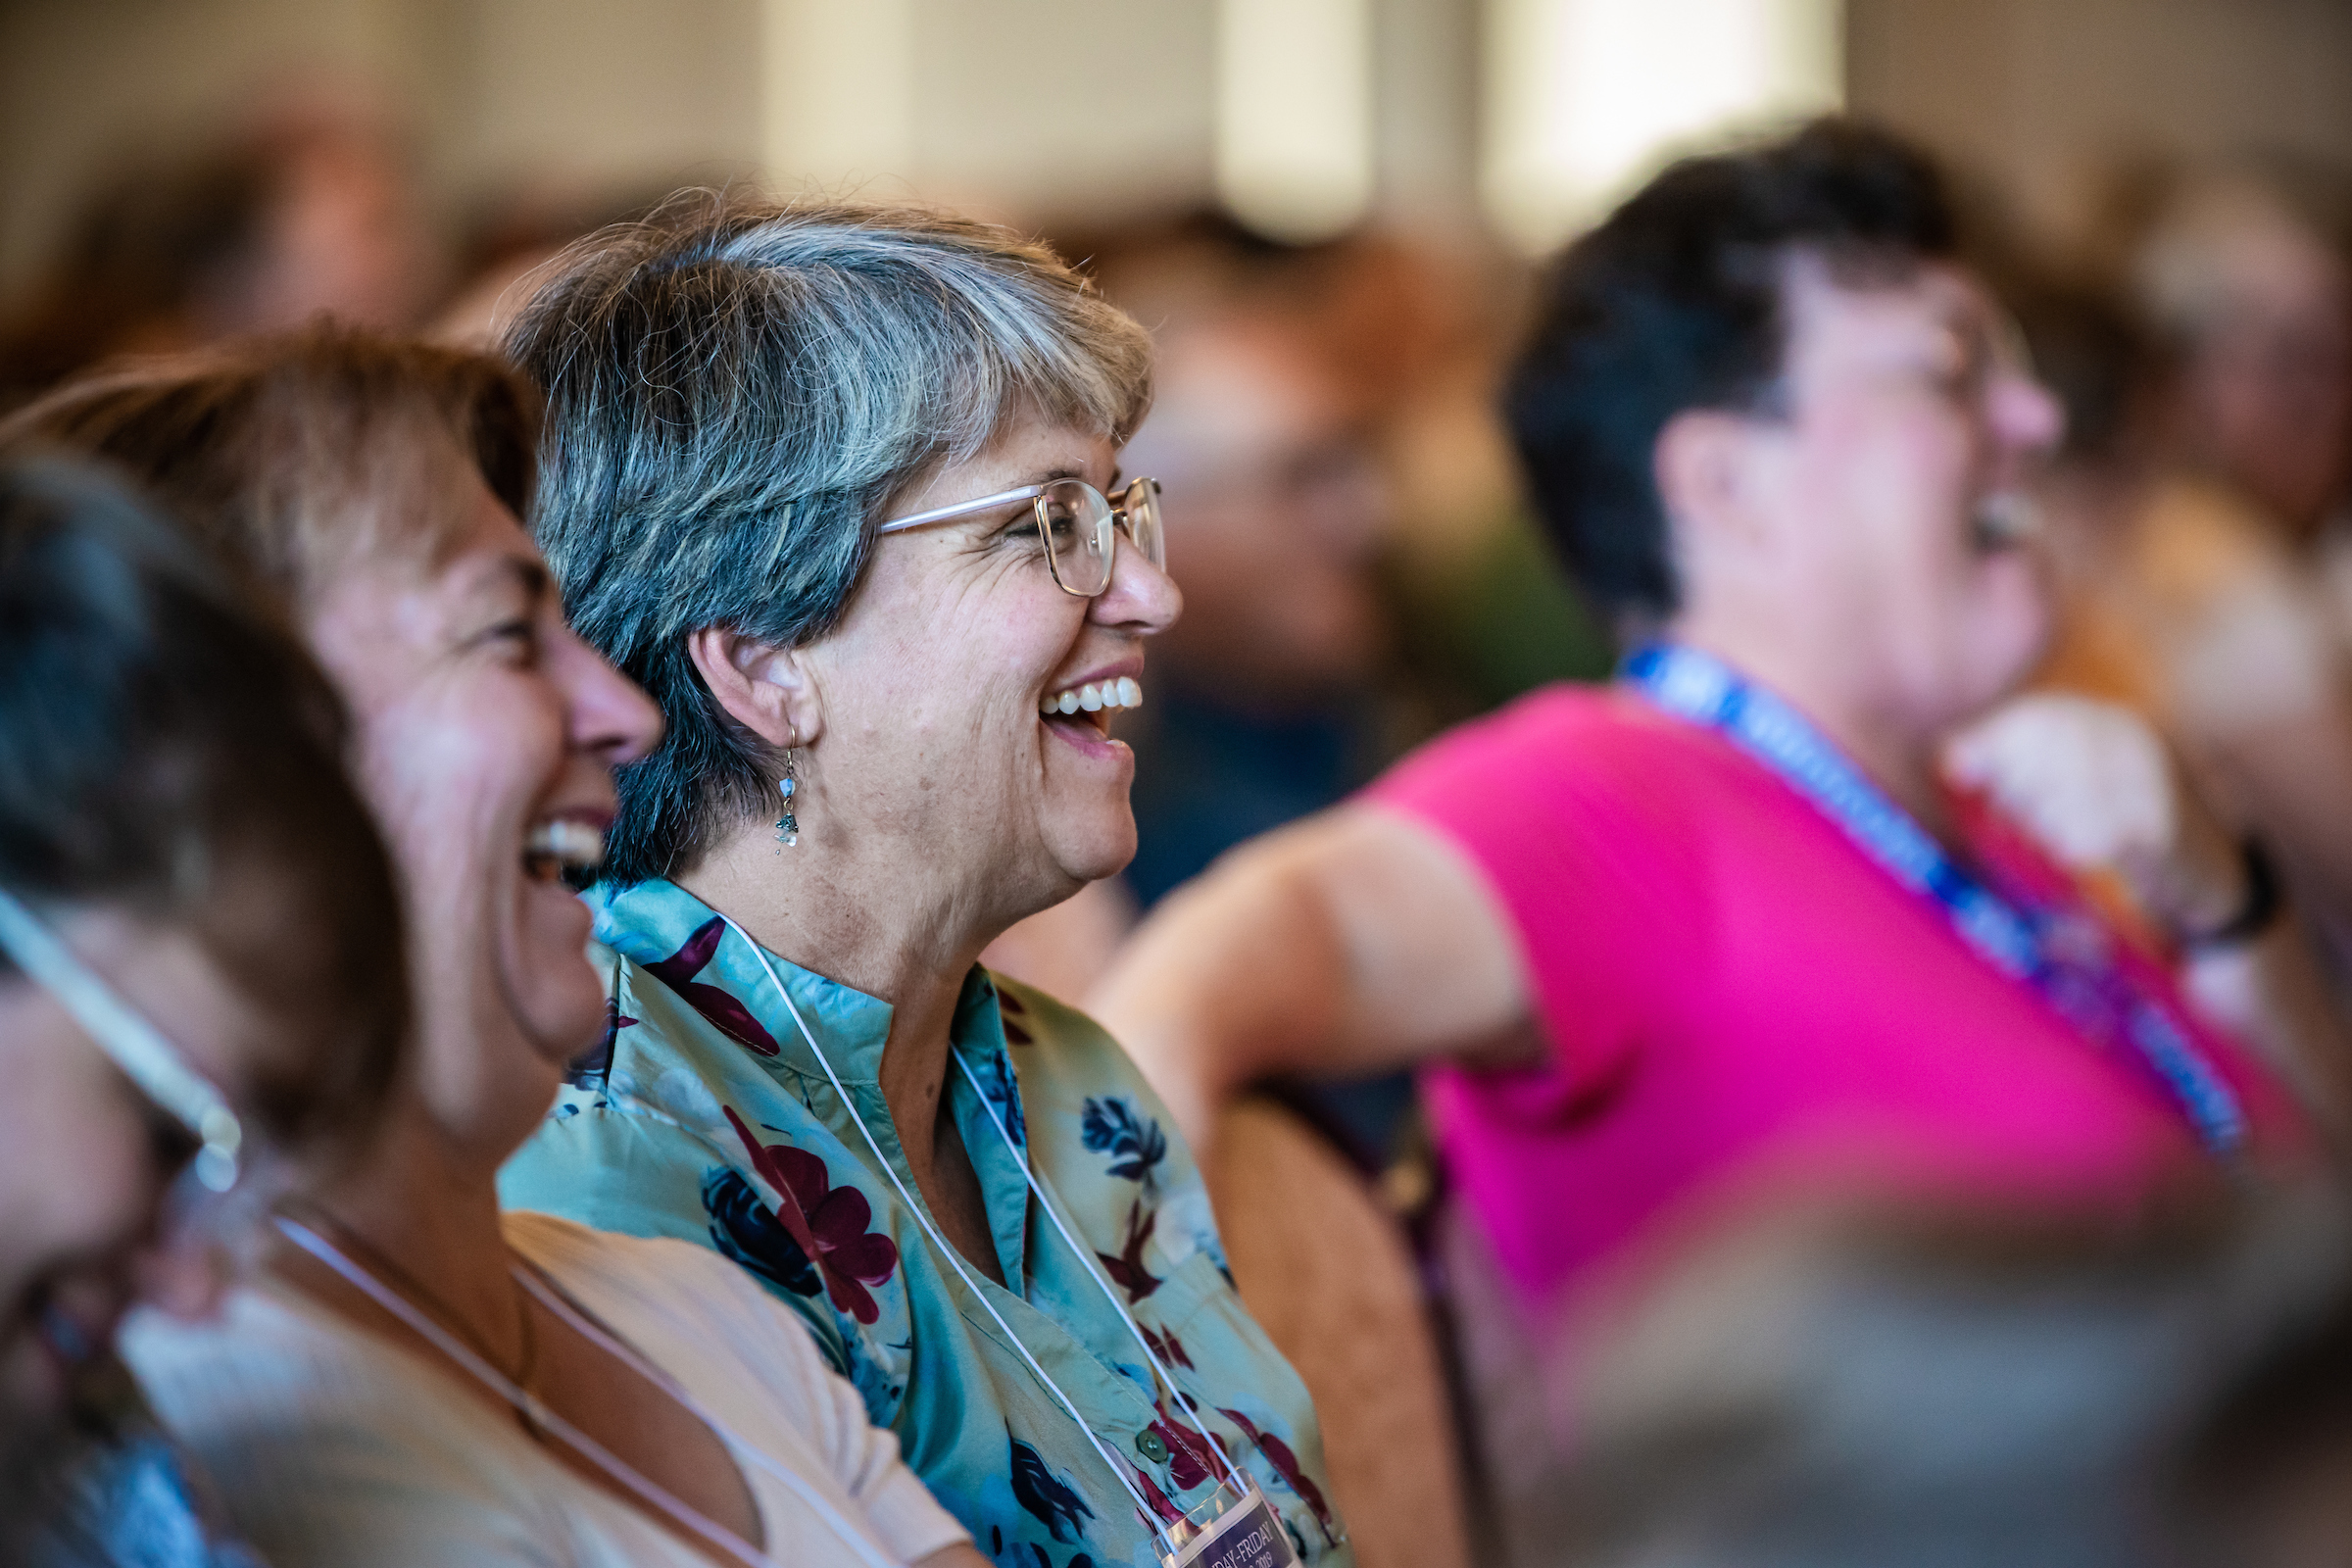 Attendees laugh during a class as part of BYU Education Week on Aug. 21, 2019, at BYU campus in Provo, Utah.